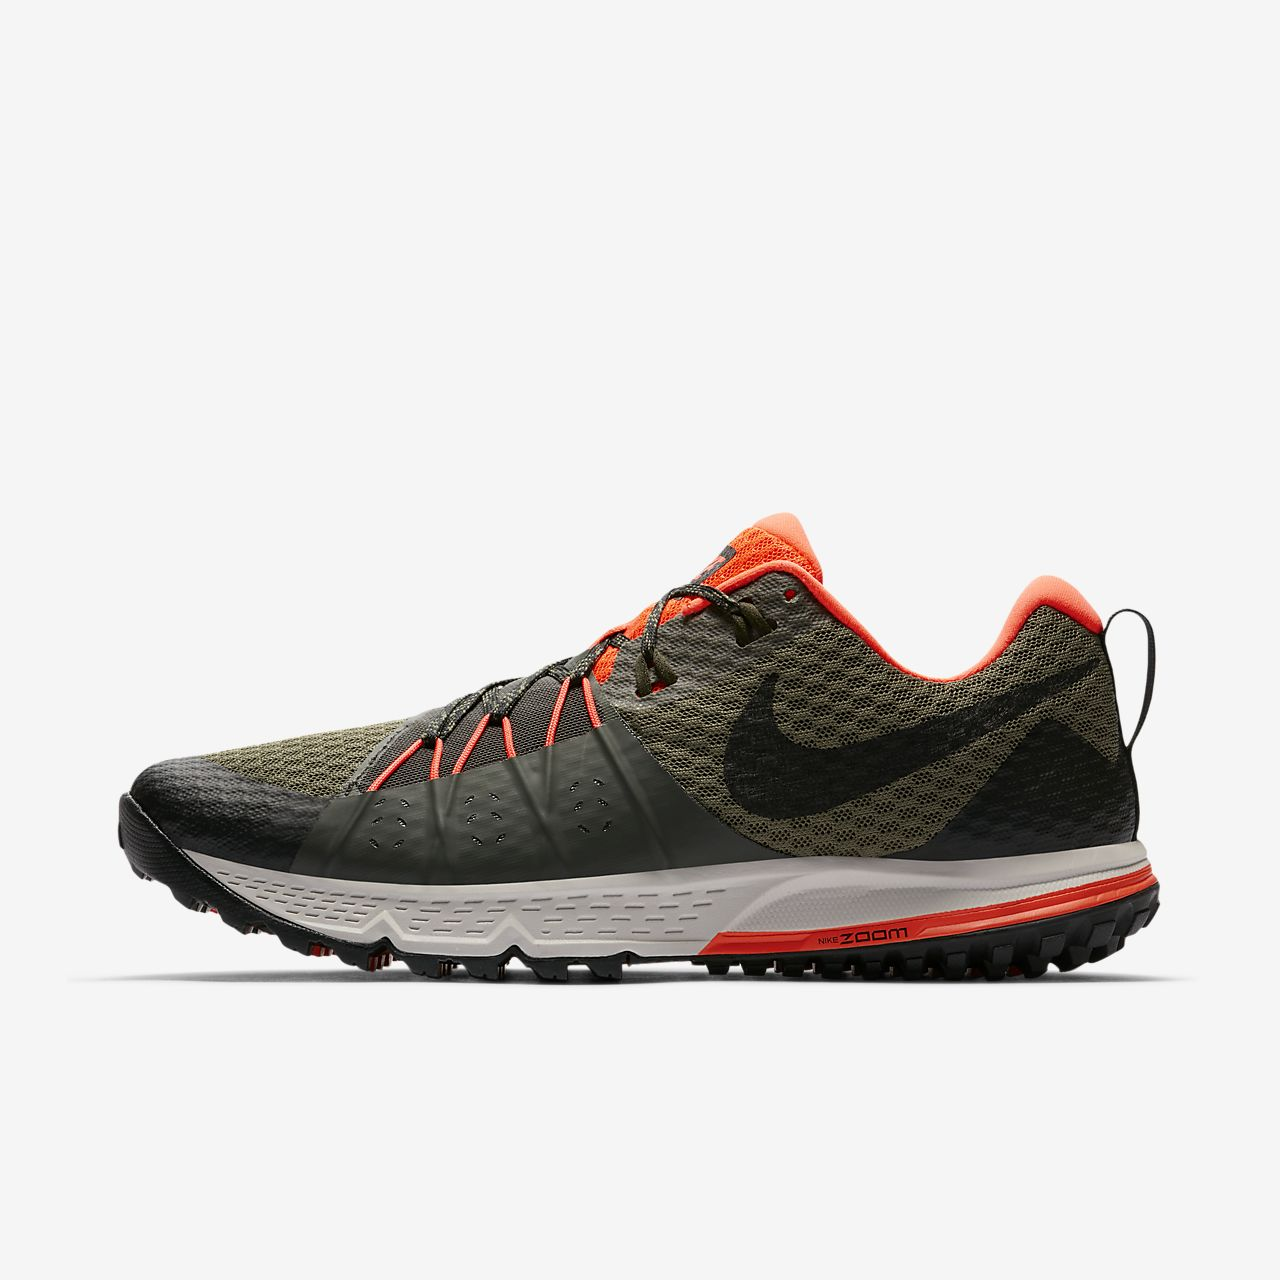 ... Nike Air Zoom Wildhorse 4 Men's Running Shoe